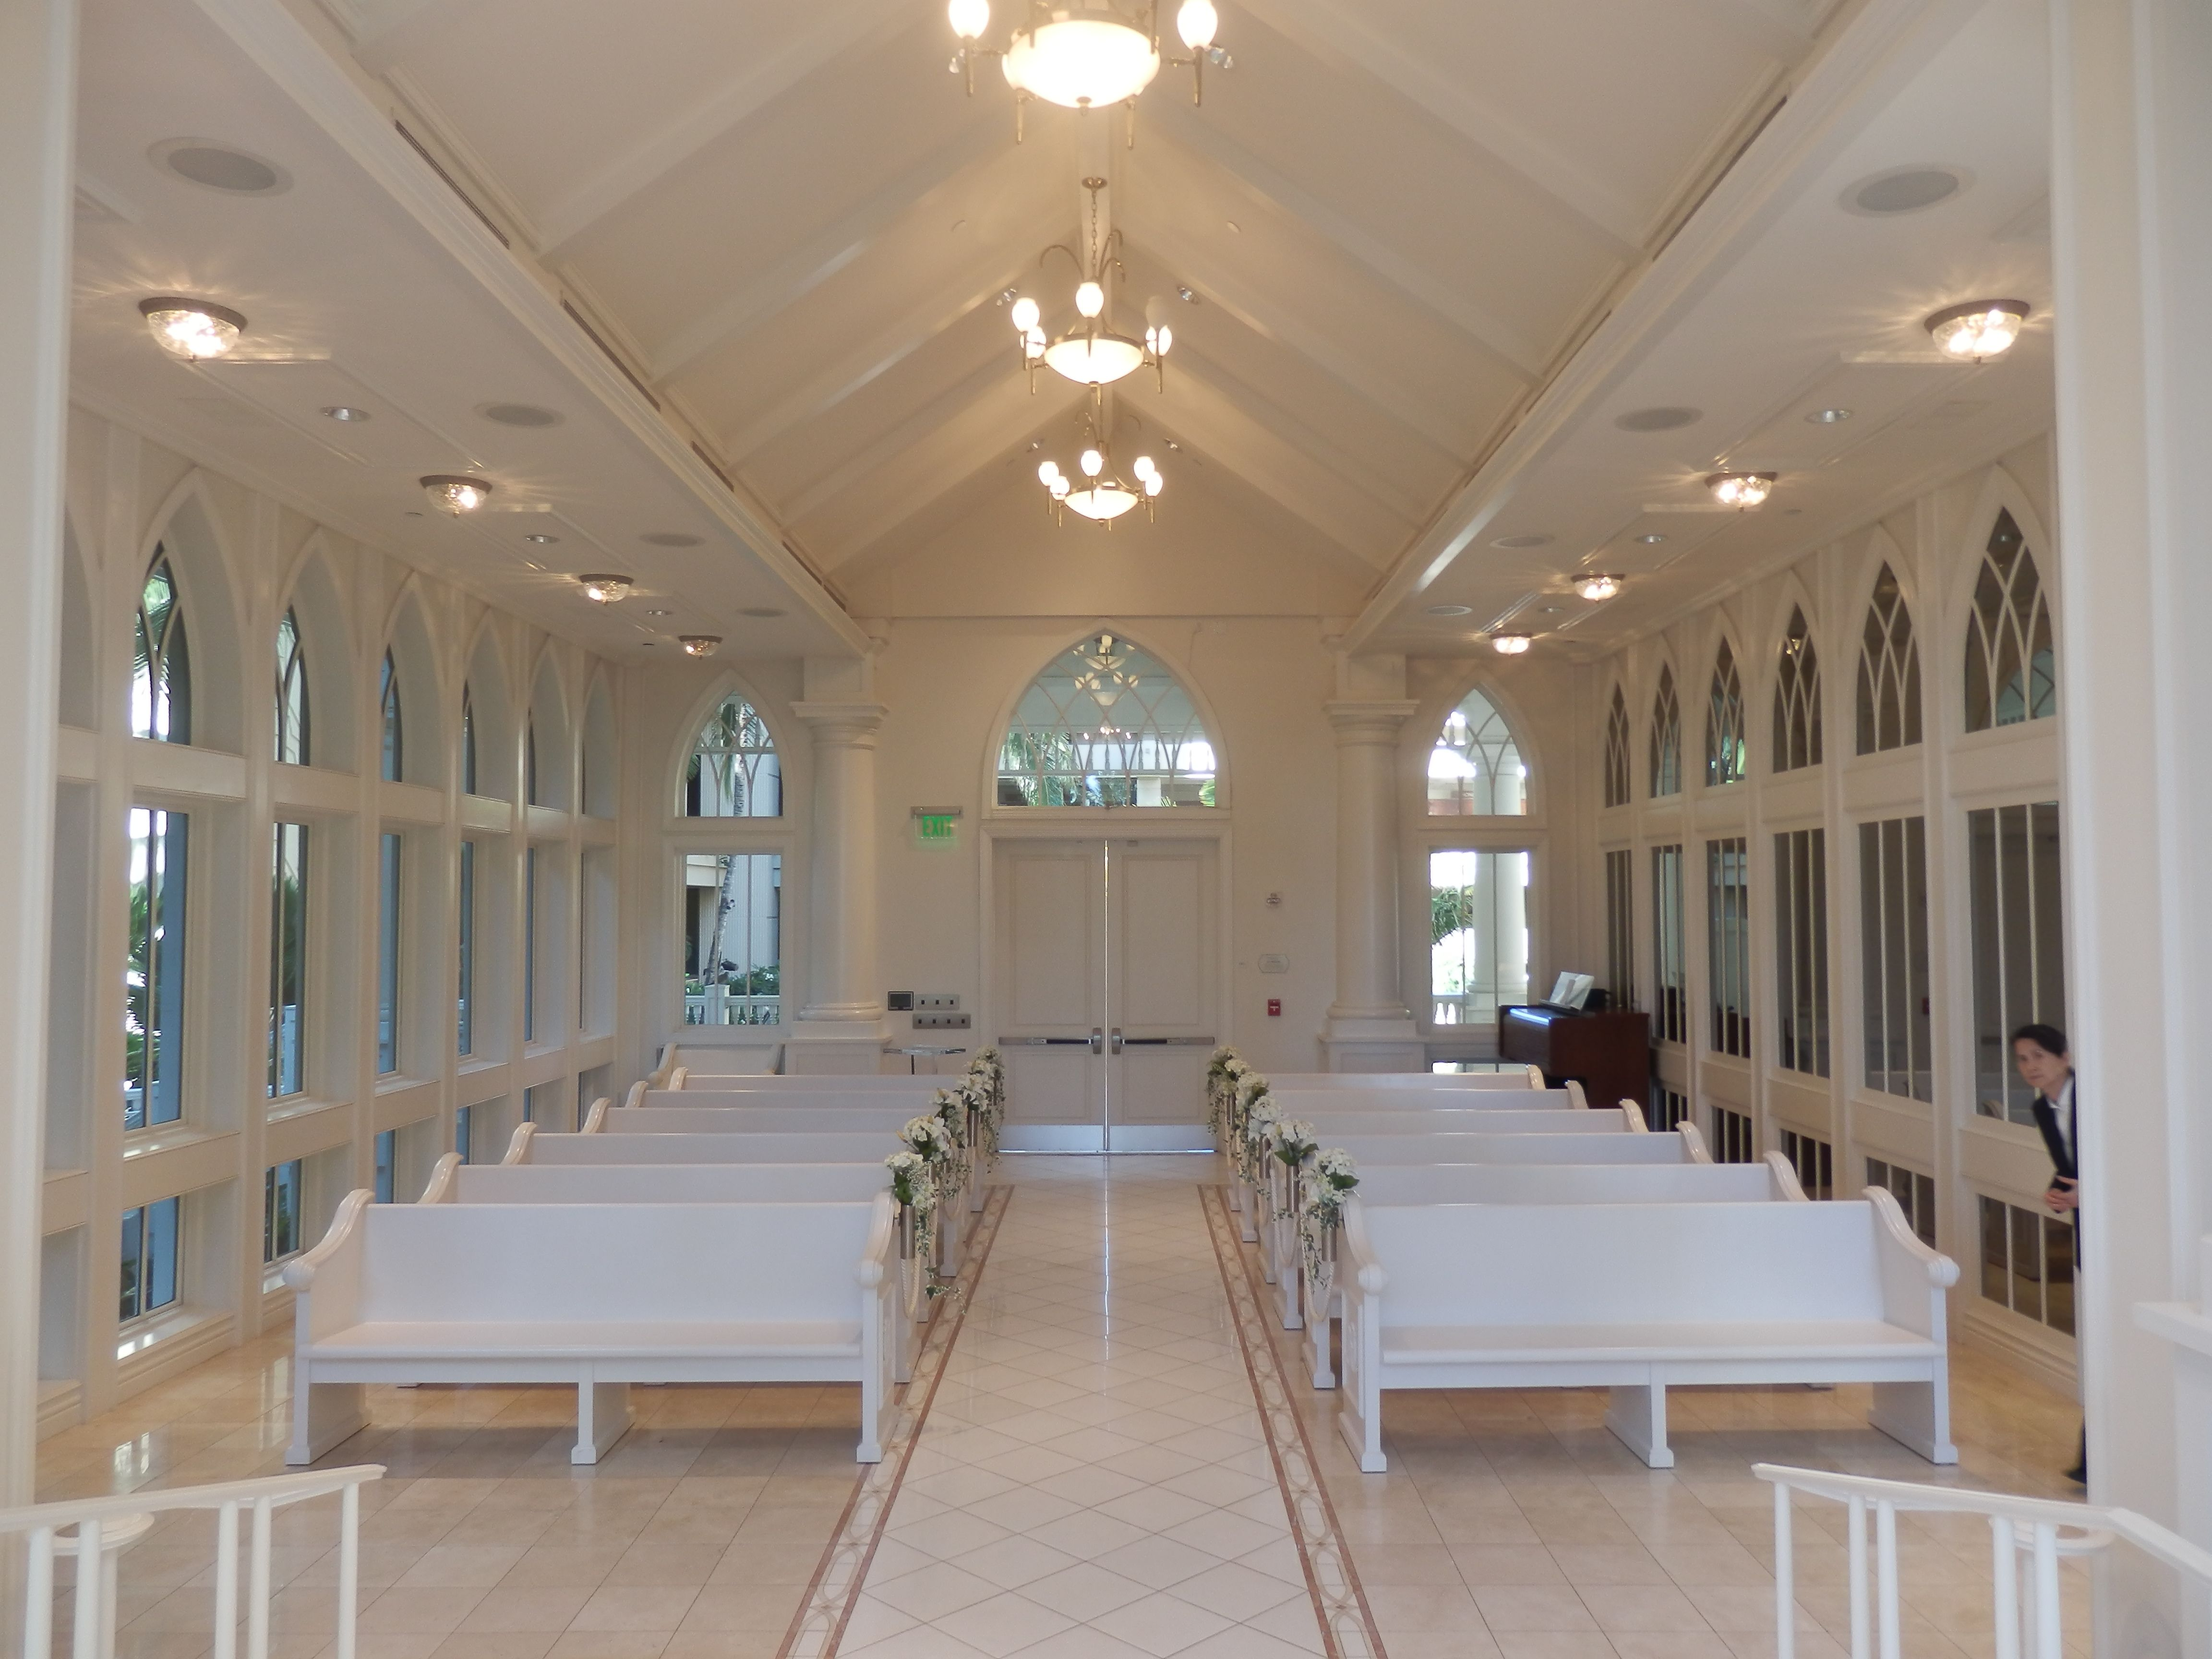 Inside The Wedding Chapel At The Hilton Hawaiian Village Honolulu Hawaii Usa Hilton Hawaiian Village Chapel Wedding Hilton